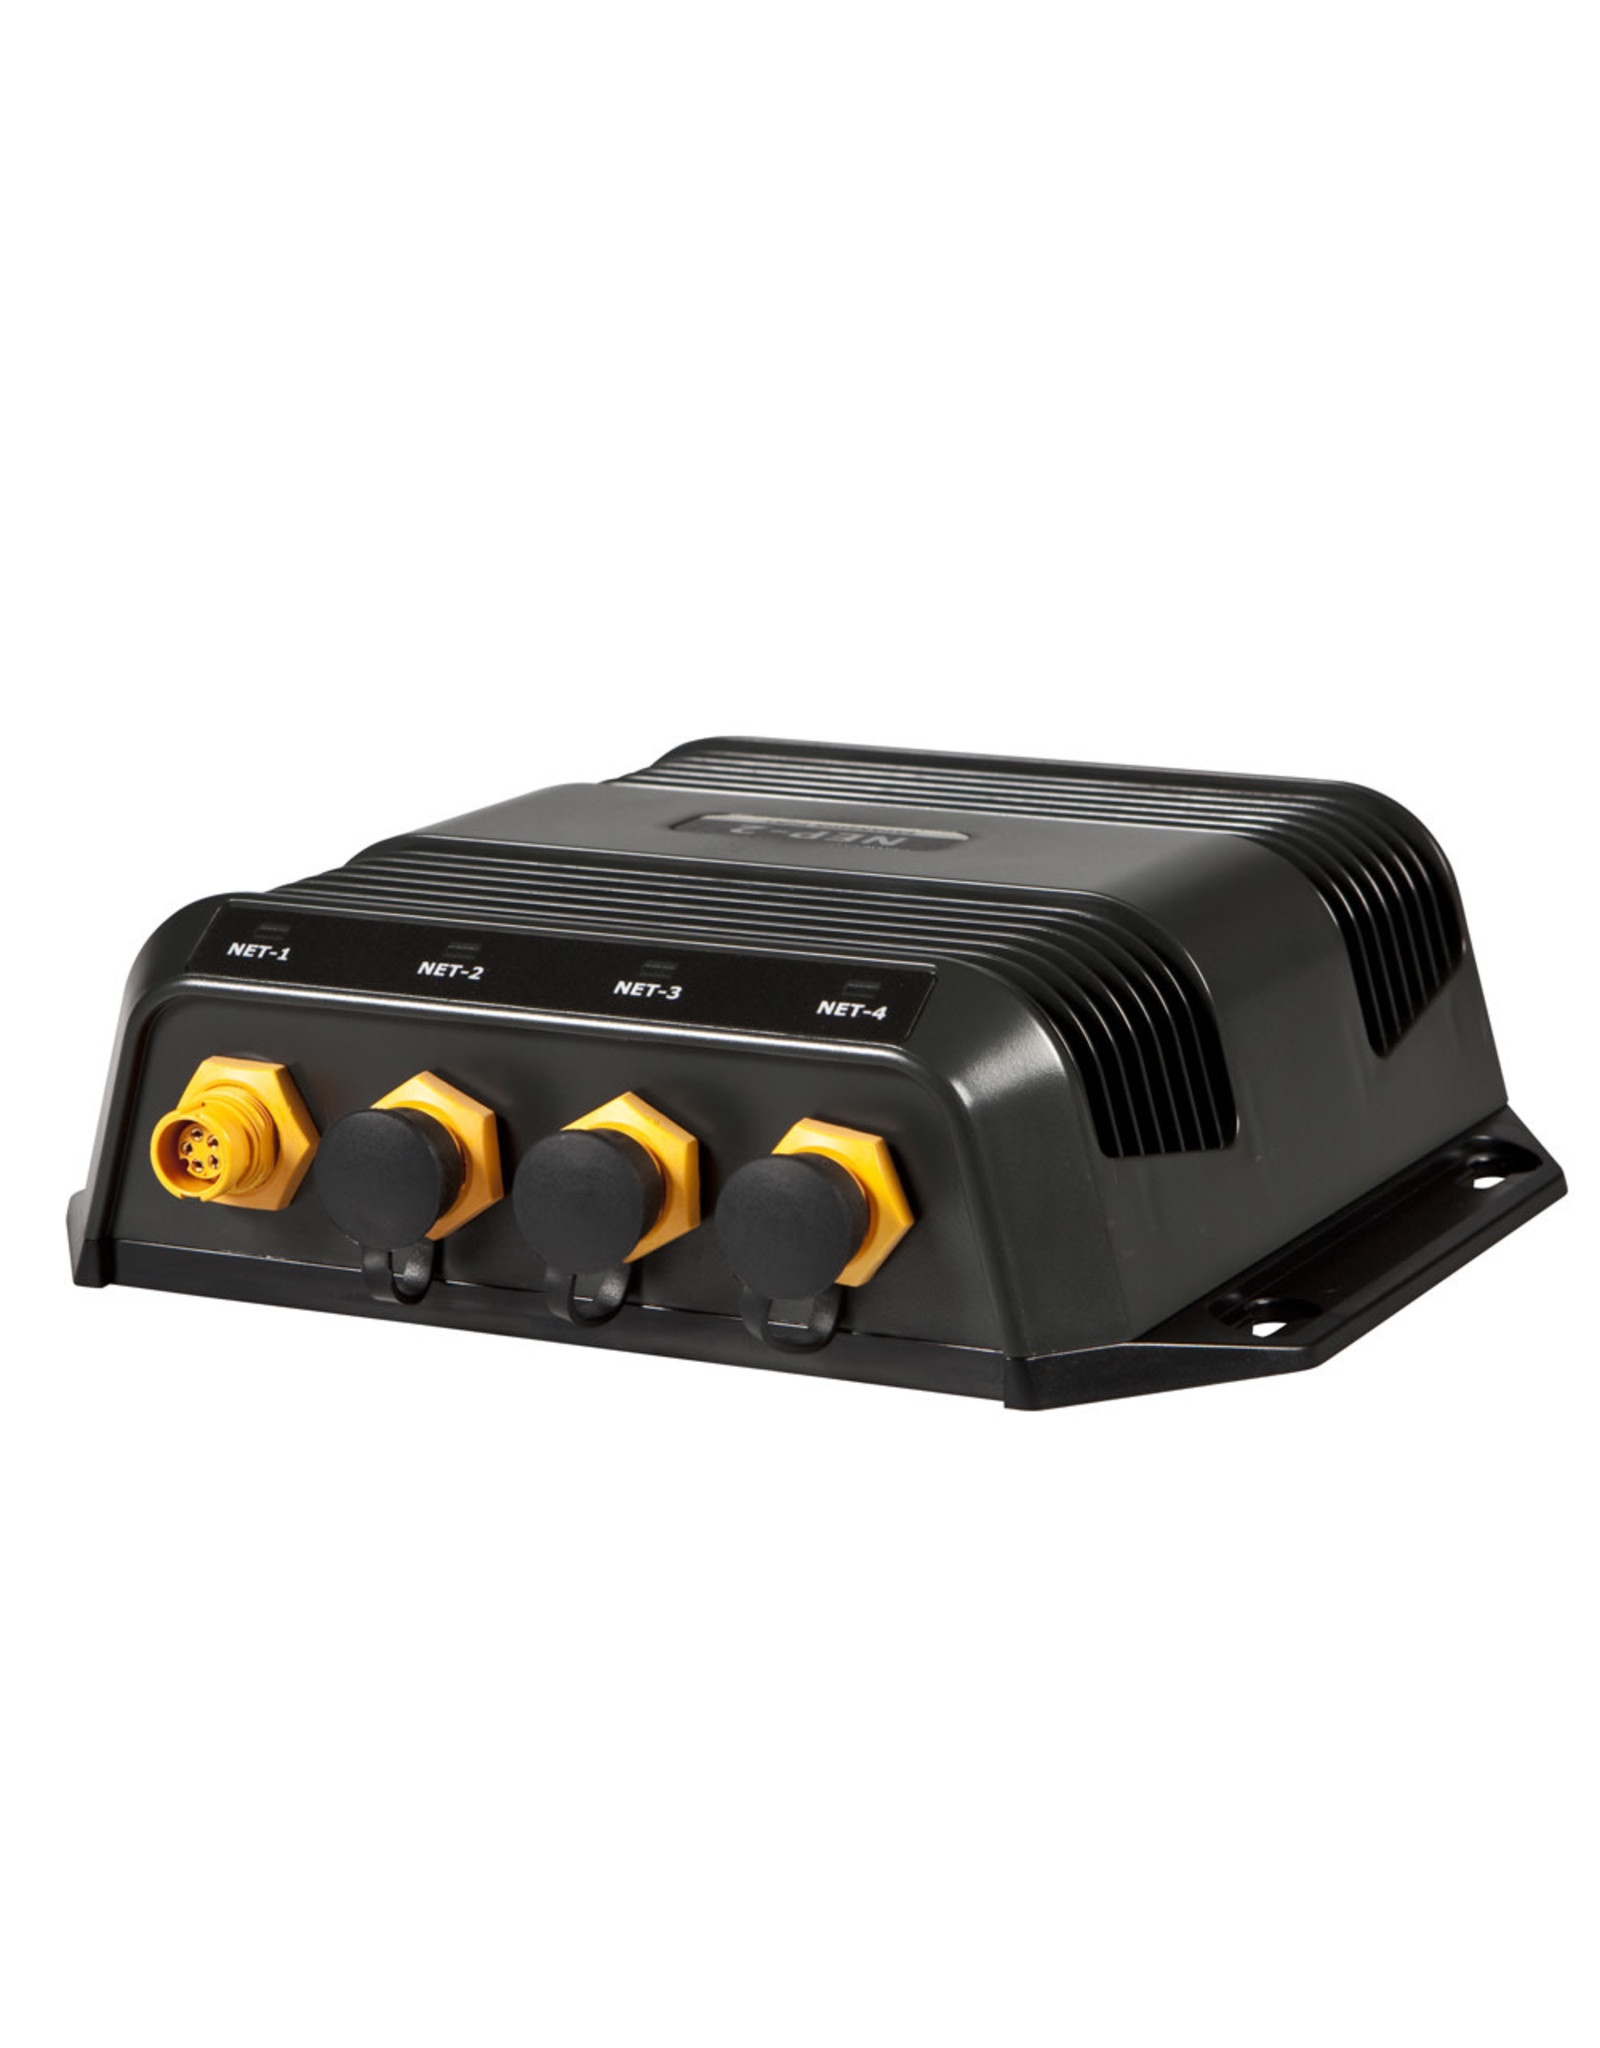 Lowrance NEP-2 Network Expansion Port